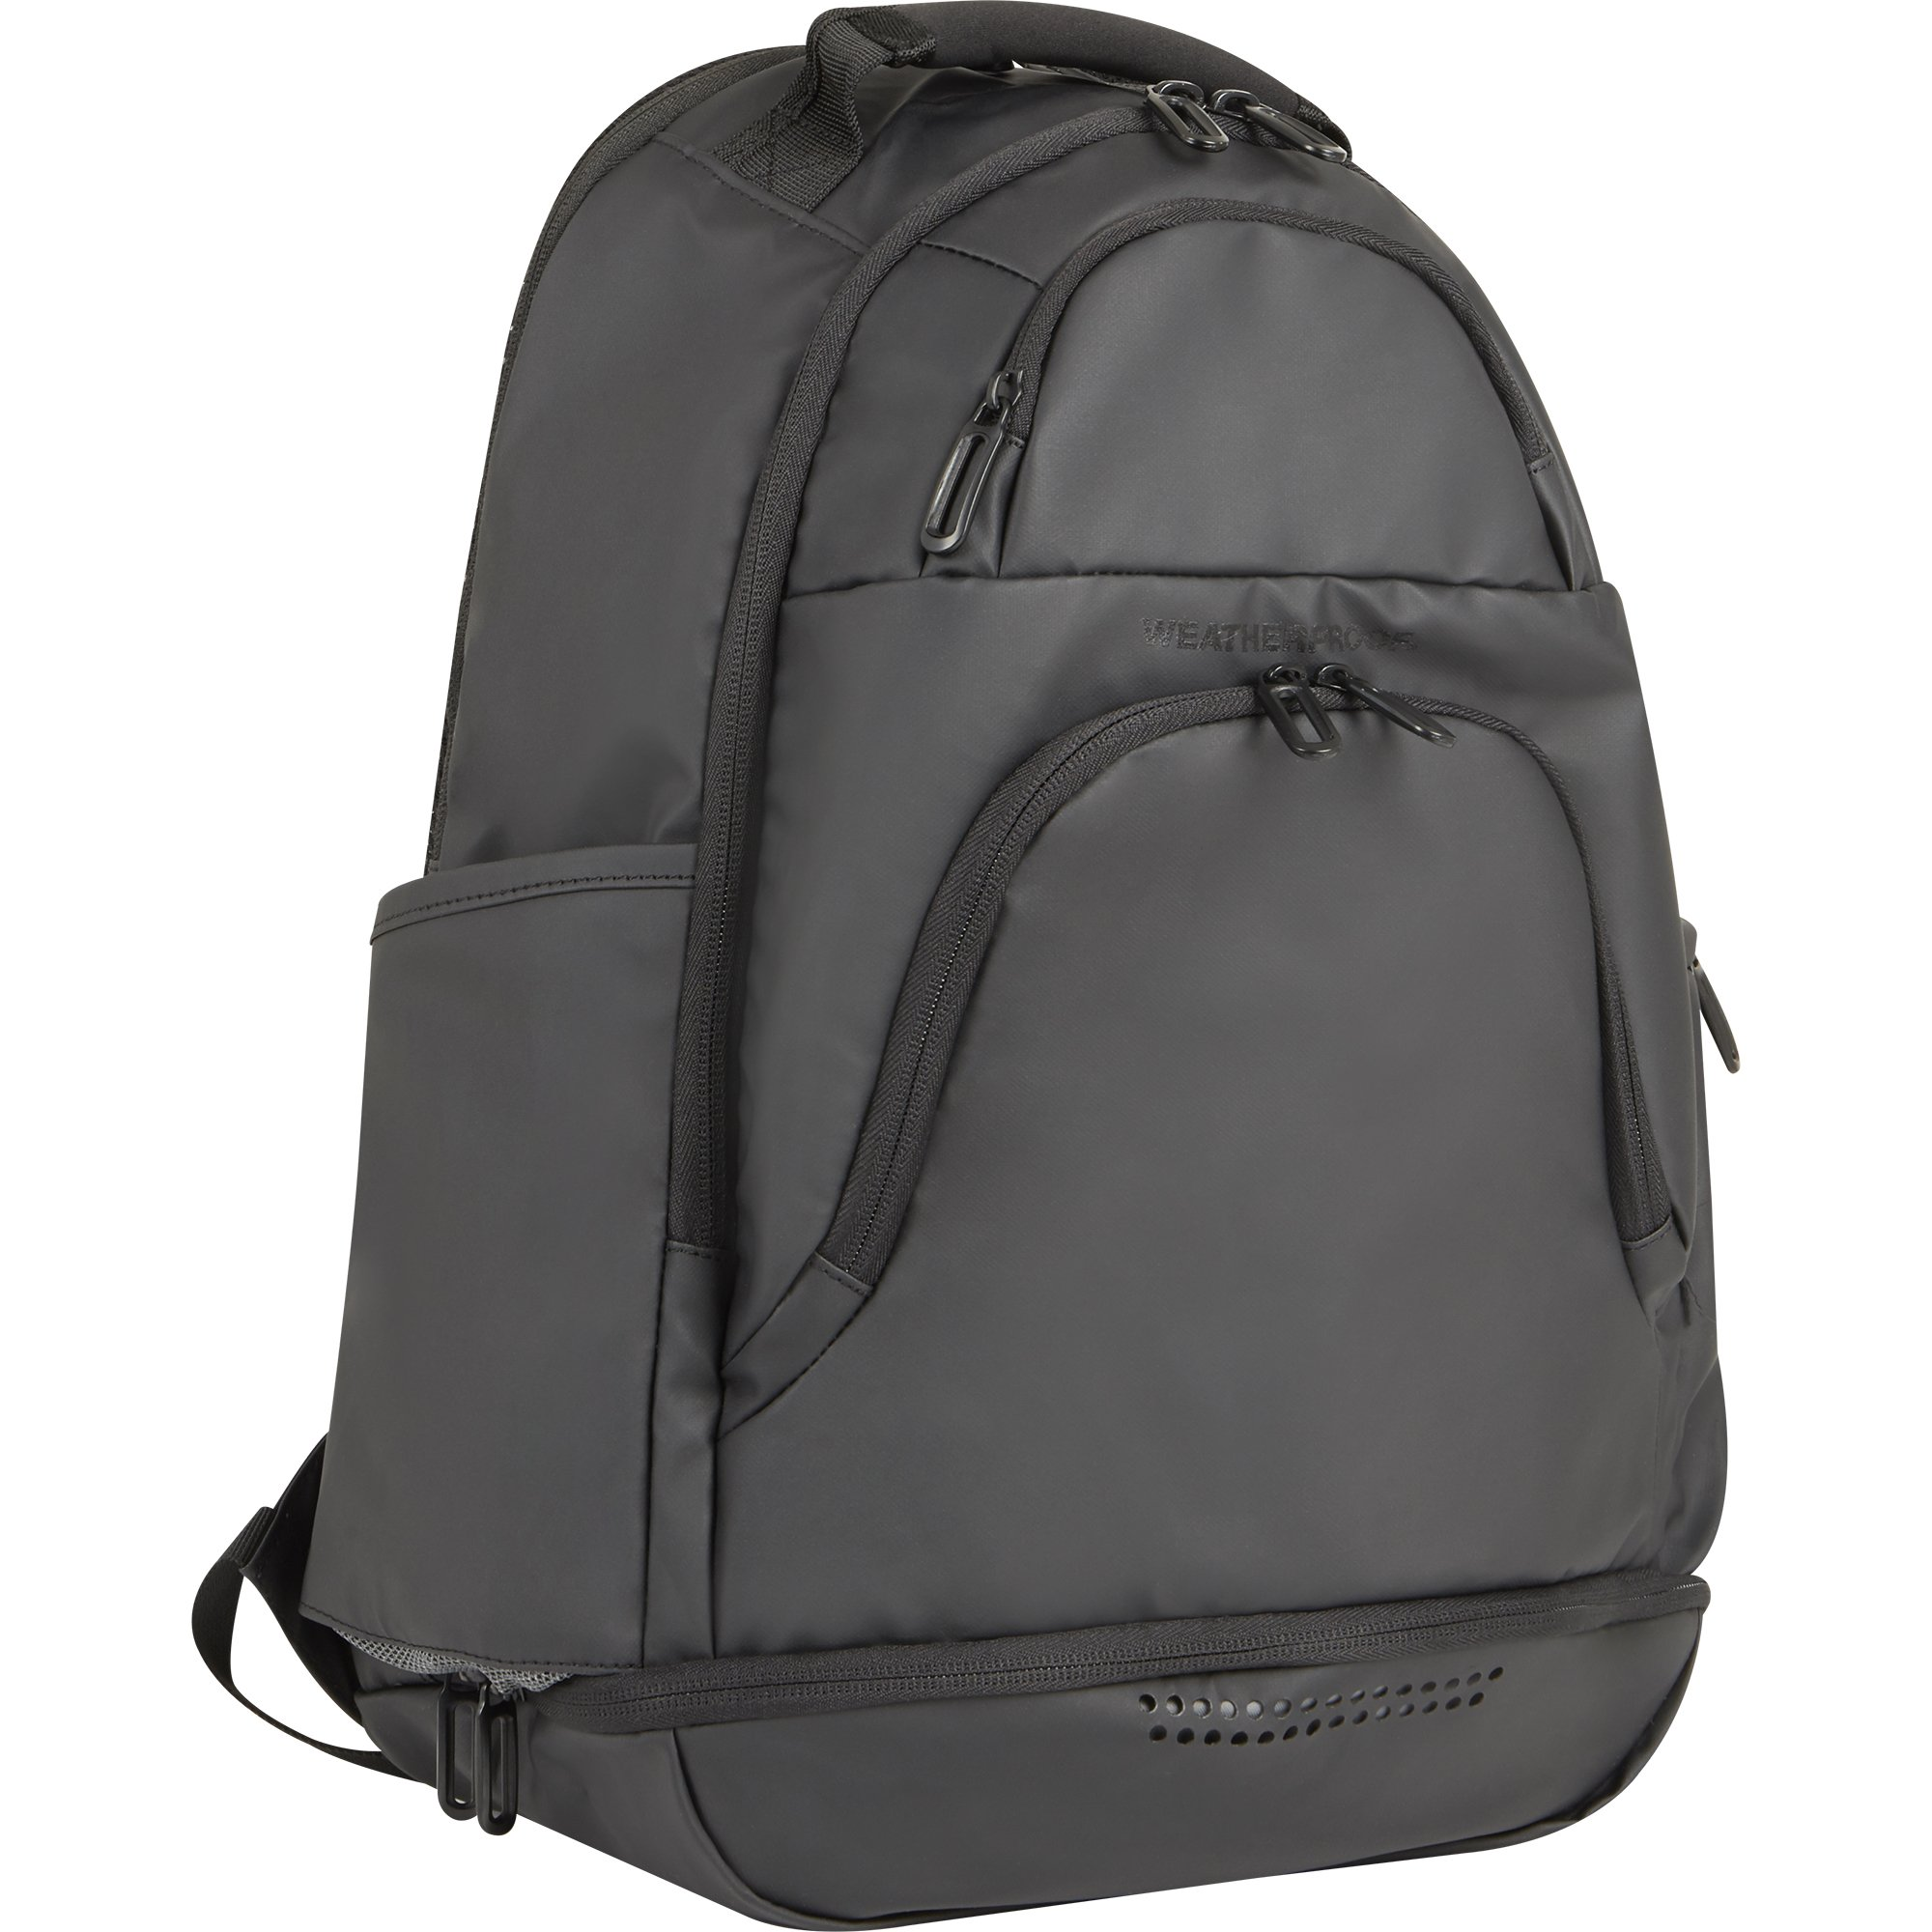 Weatherproof Men's Travel Carry-On Backpack, Black, One Size